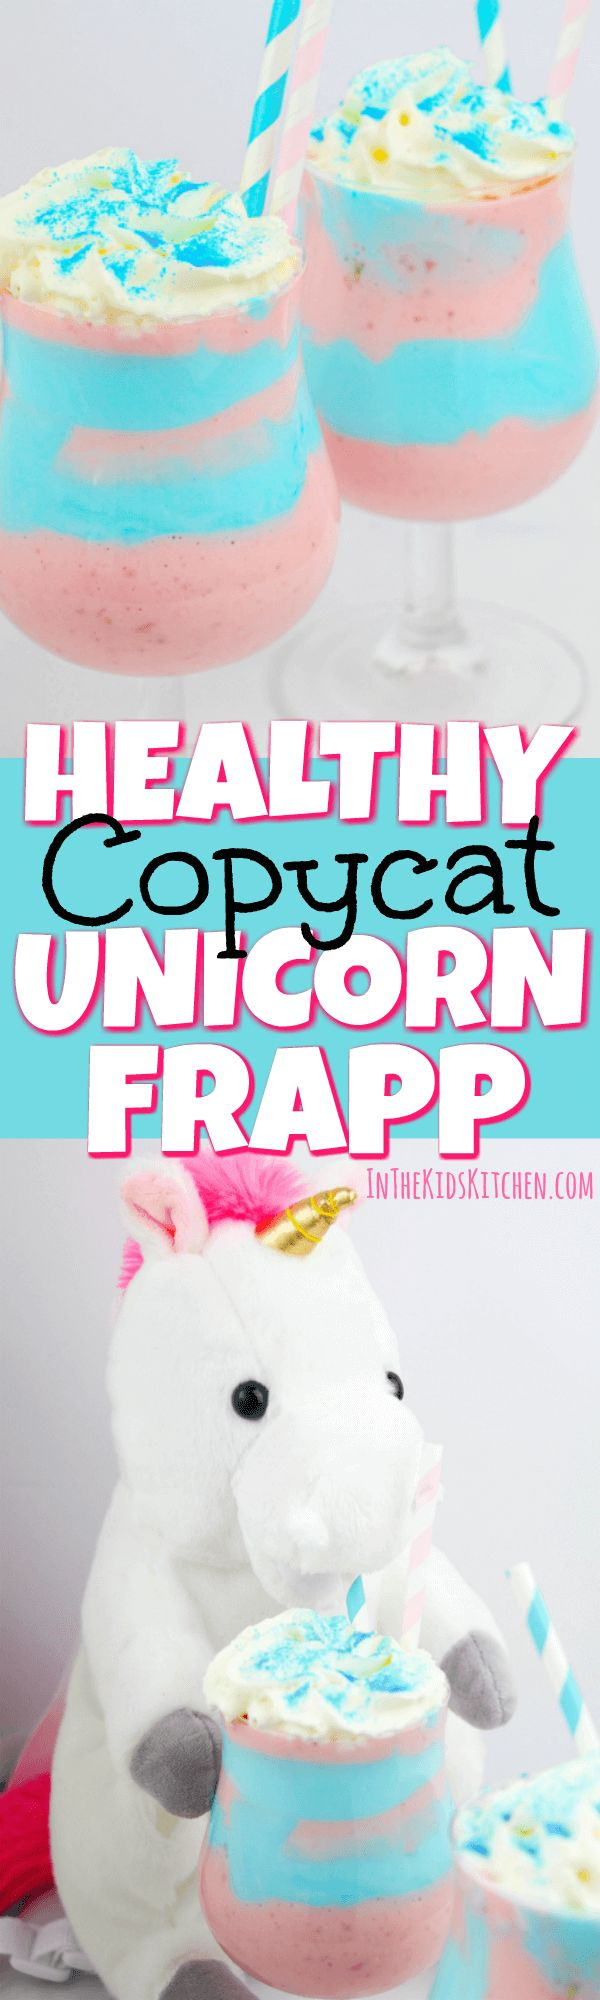 A healthy copycat of Starbuck's Limited Edition Unicorn Frappuccino that you can feel good about giving your kids. High in protein & calcium, low in sugar.